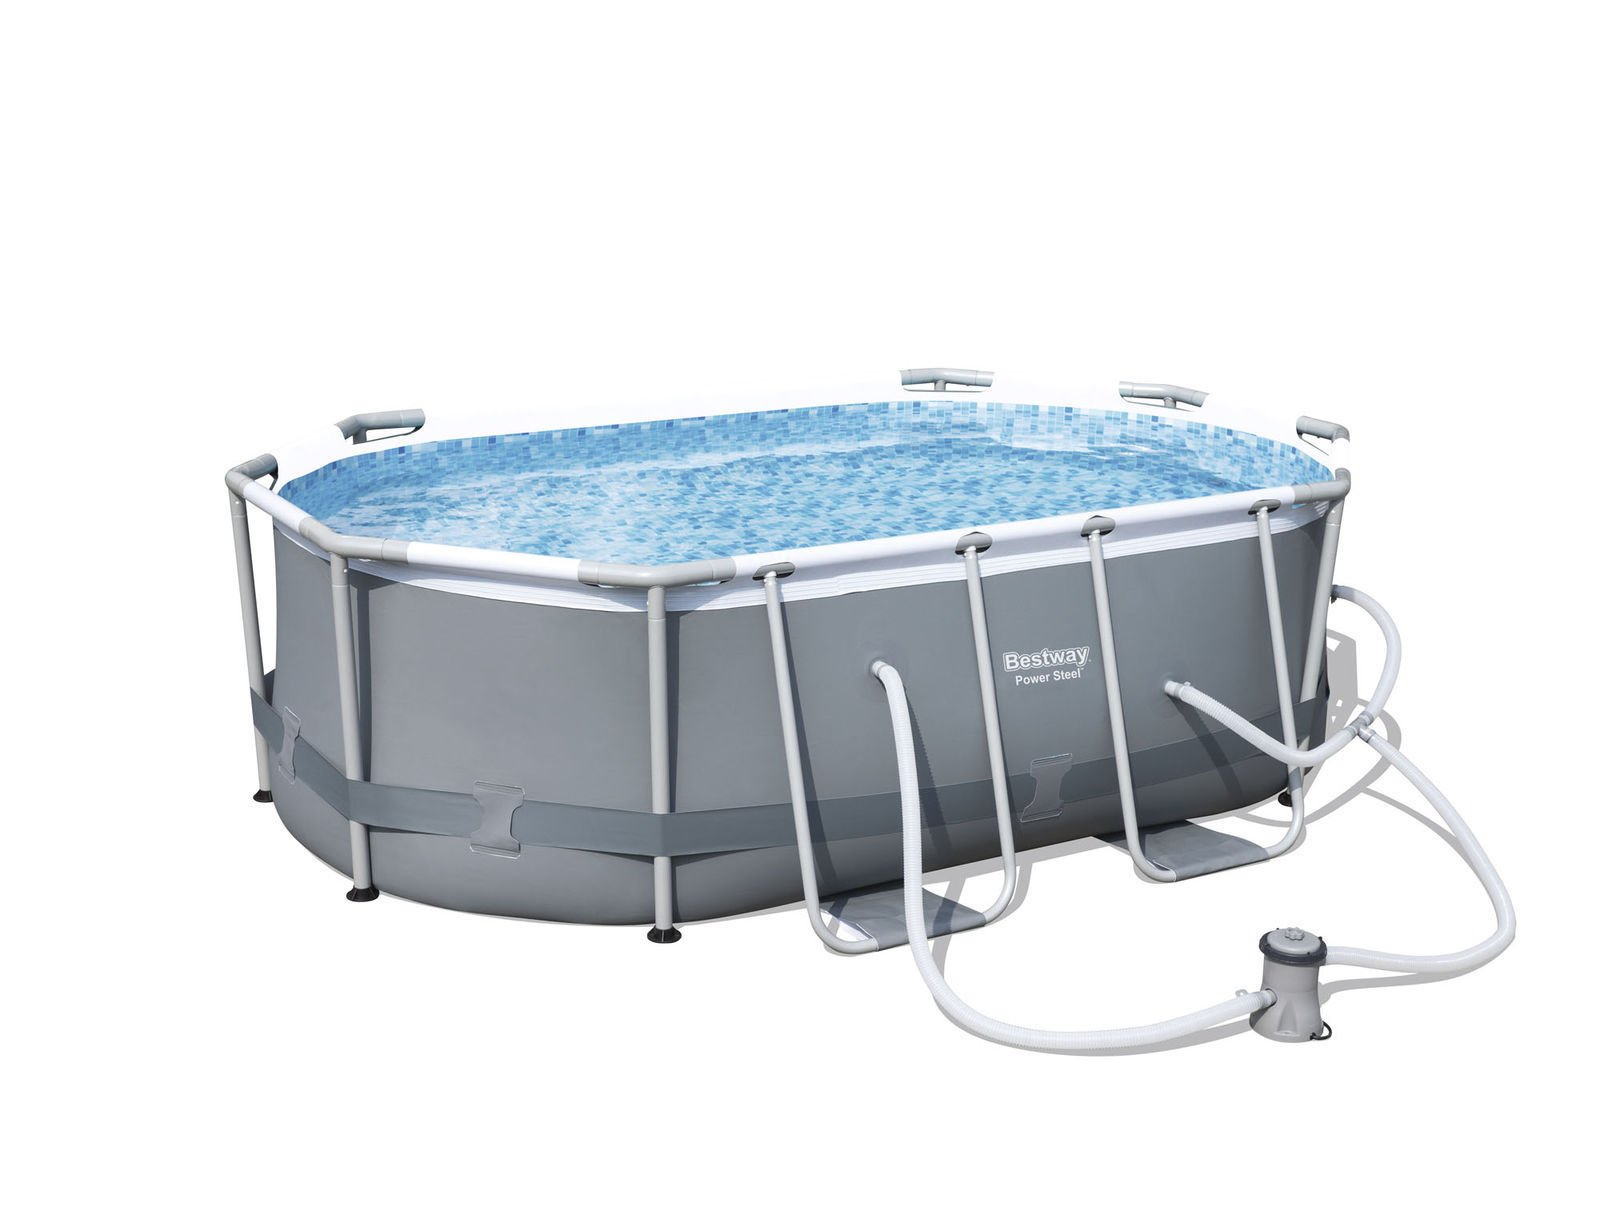 Garden&Park Bestway 9'10'' x 6'6'' x 33'' Power Steel Oval Frame Above Ground Swimming Pool